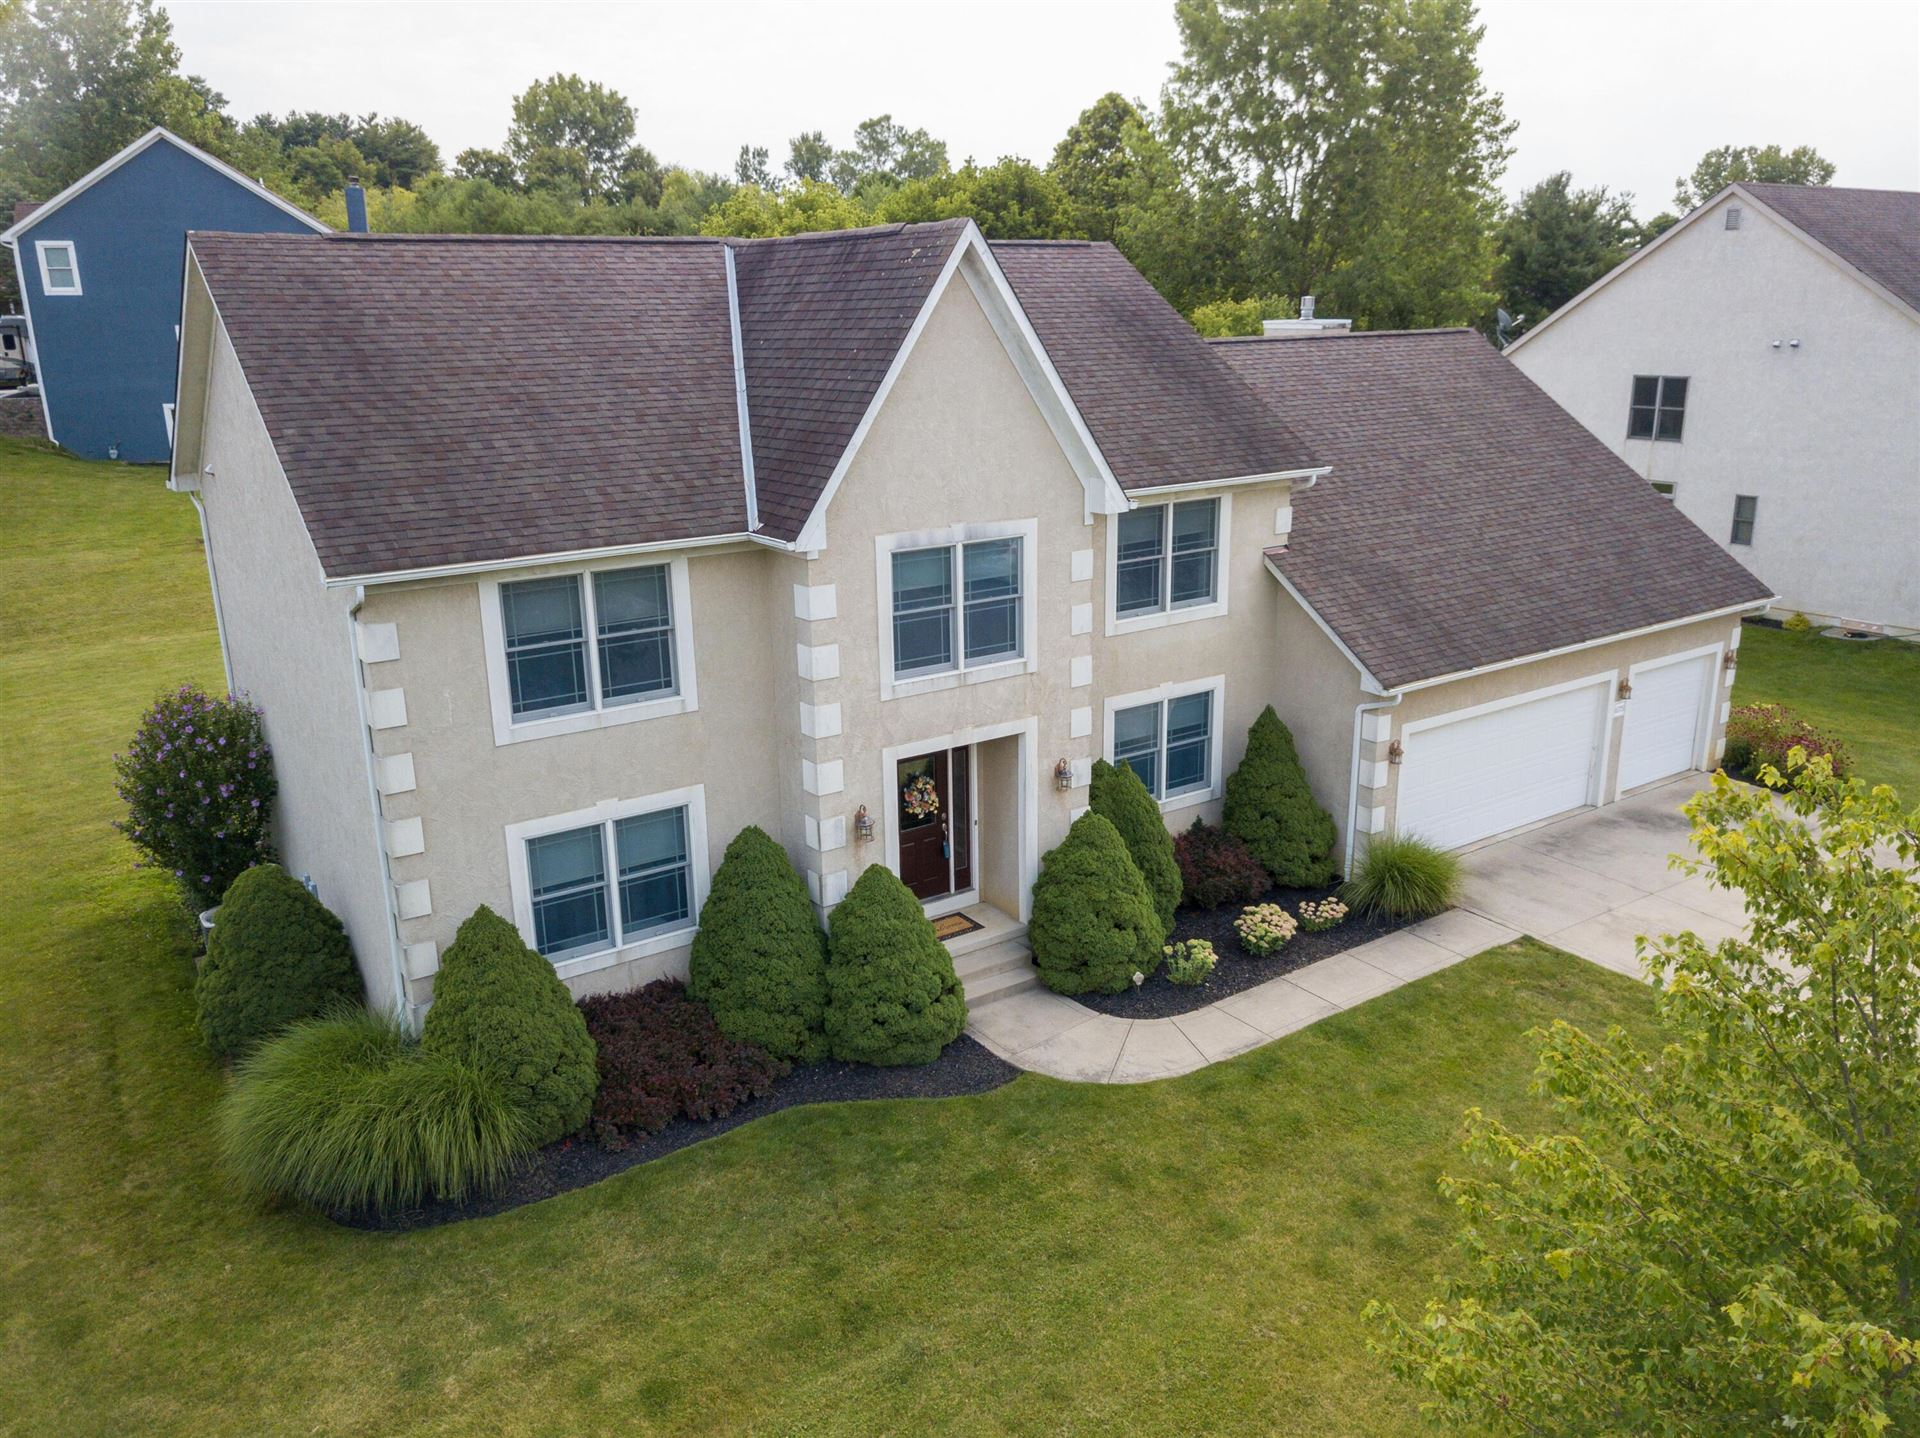 Photo of 6315 Crystal Valley Drive, Galena, OH 43021 (MLS # 221025623)